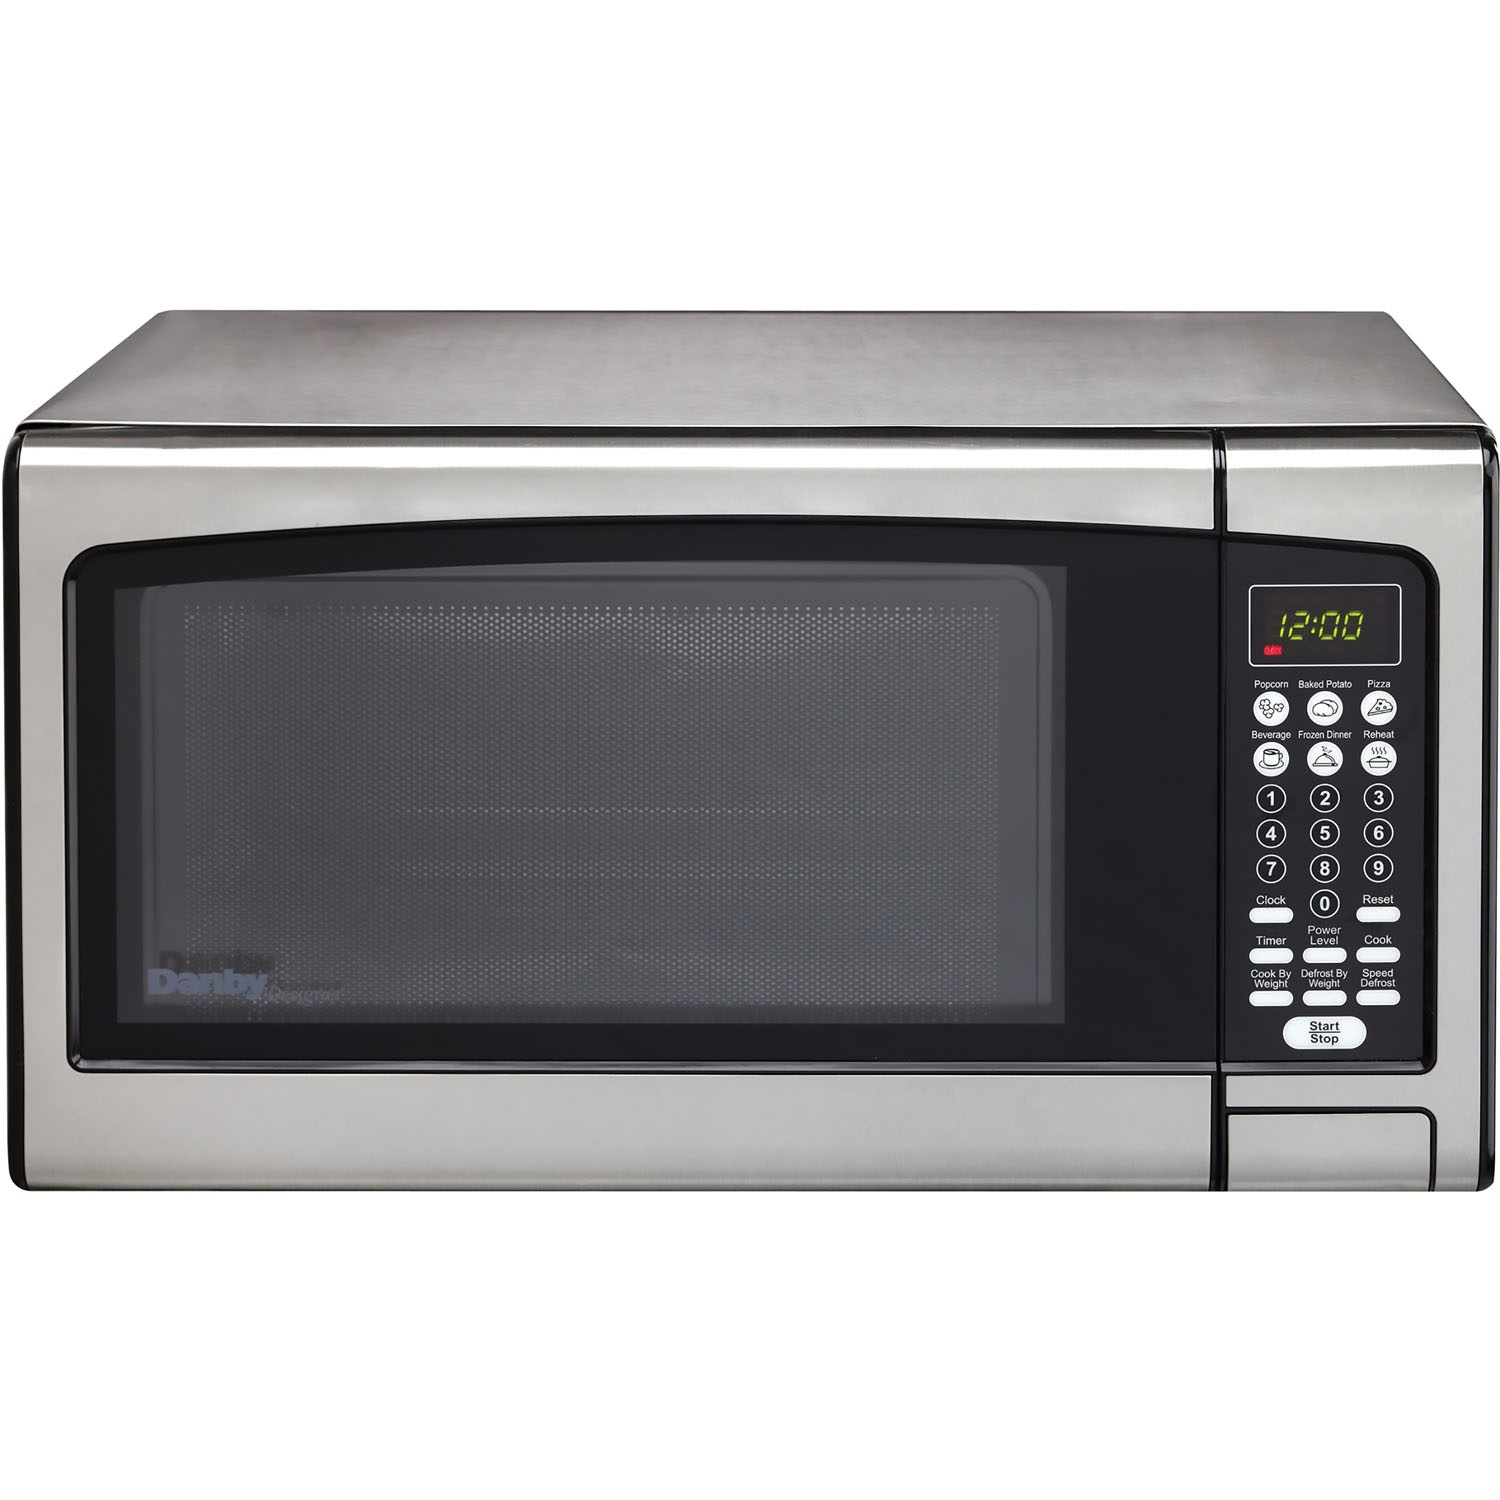 Danby Designer 1.1 Cu. Ft. Microwave Oven In Stainless